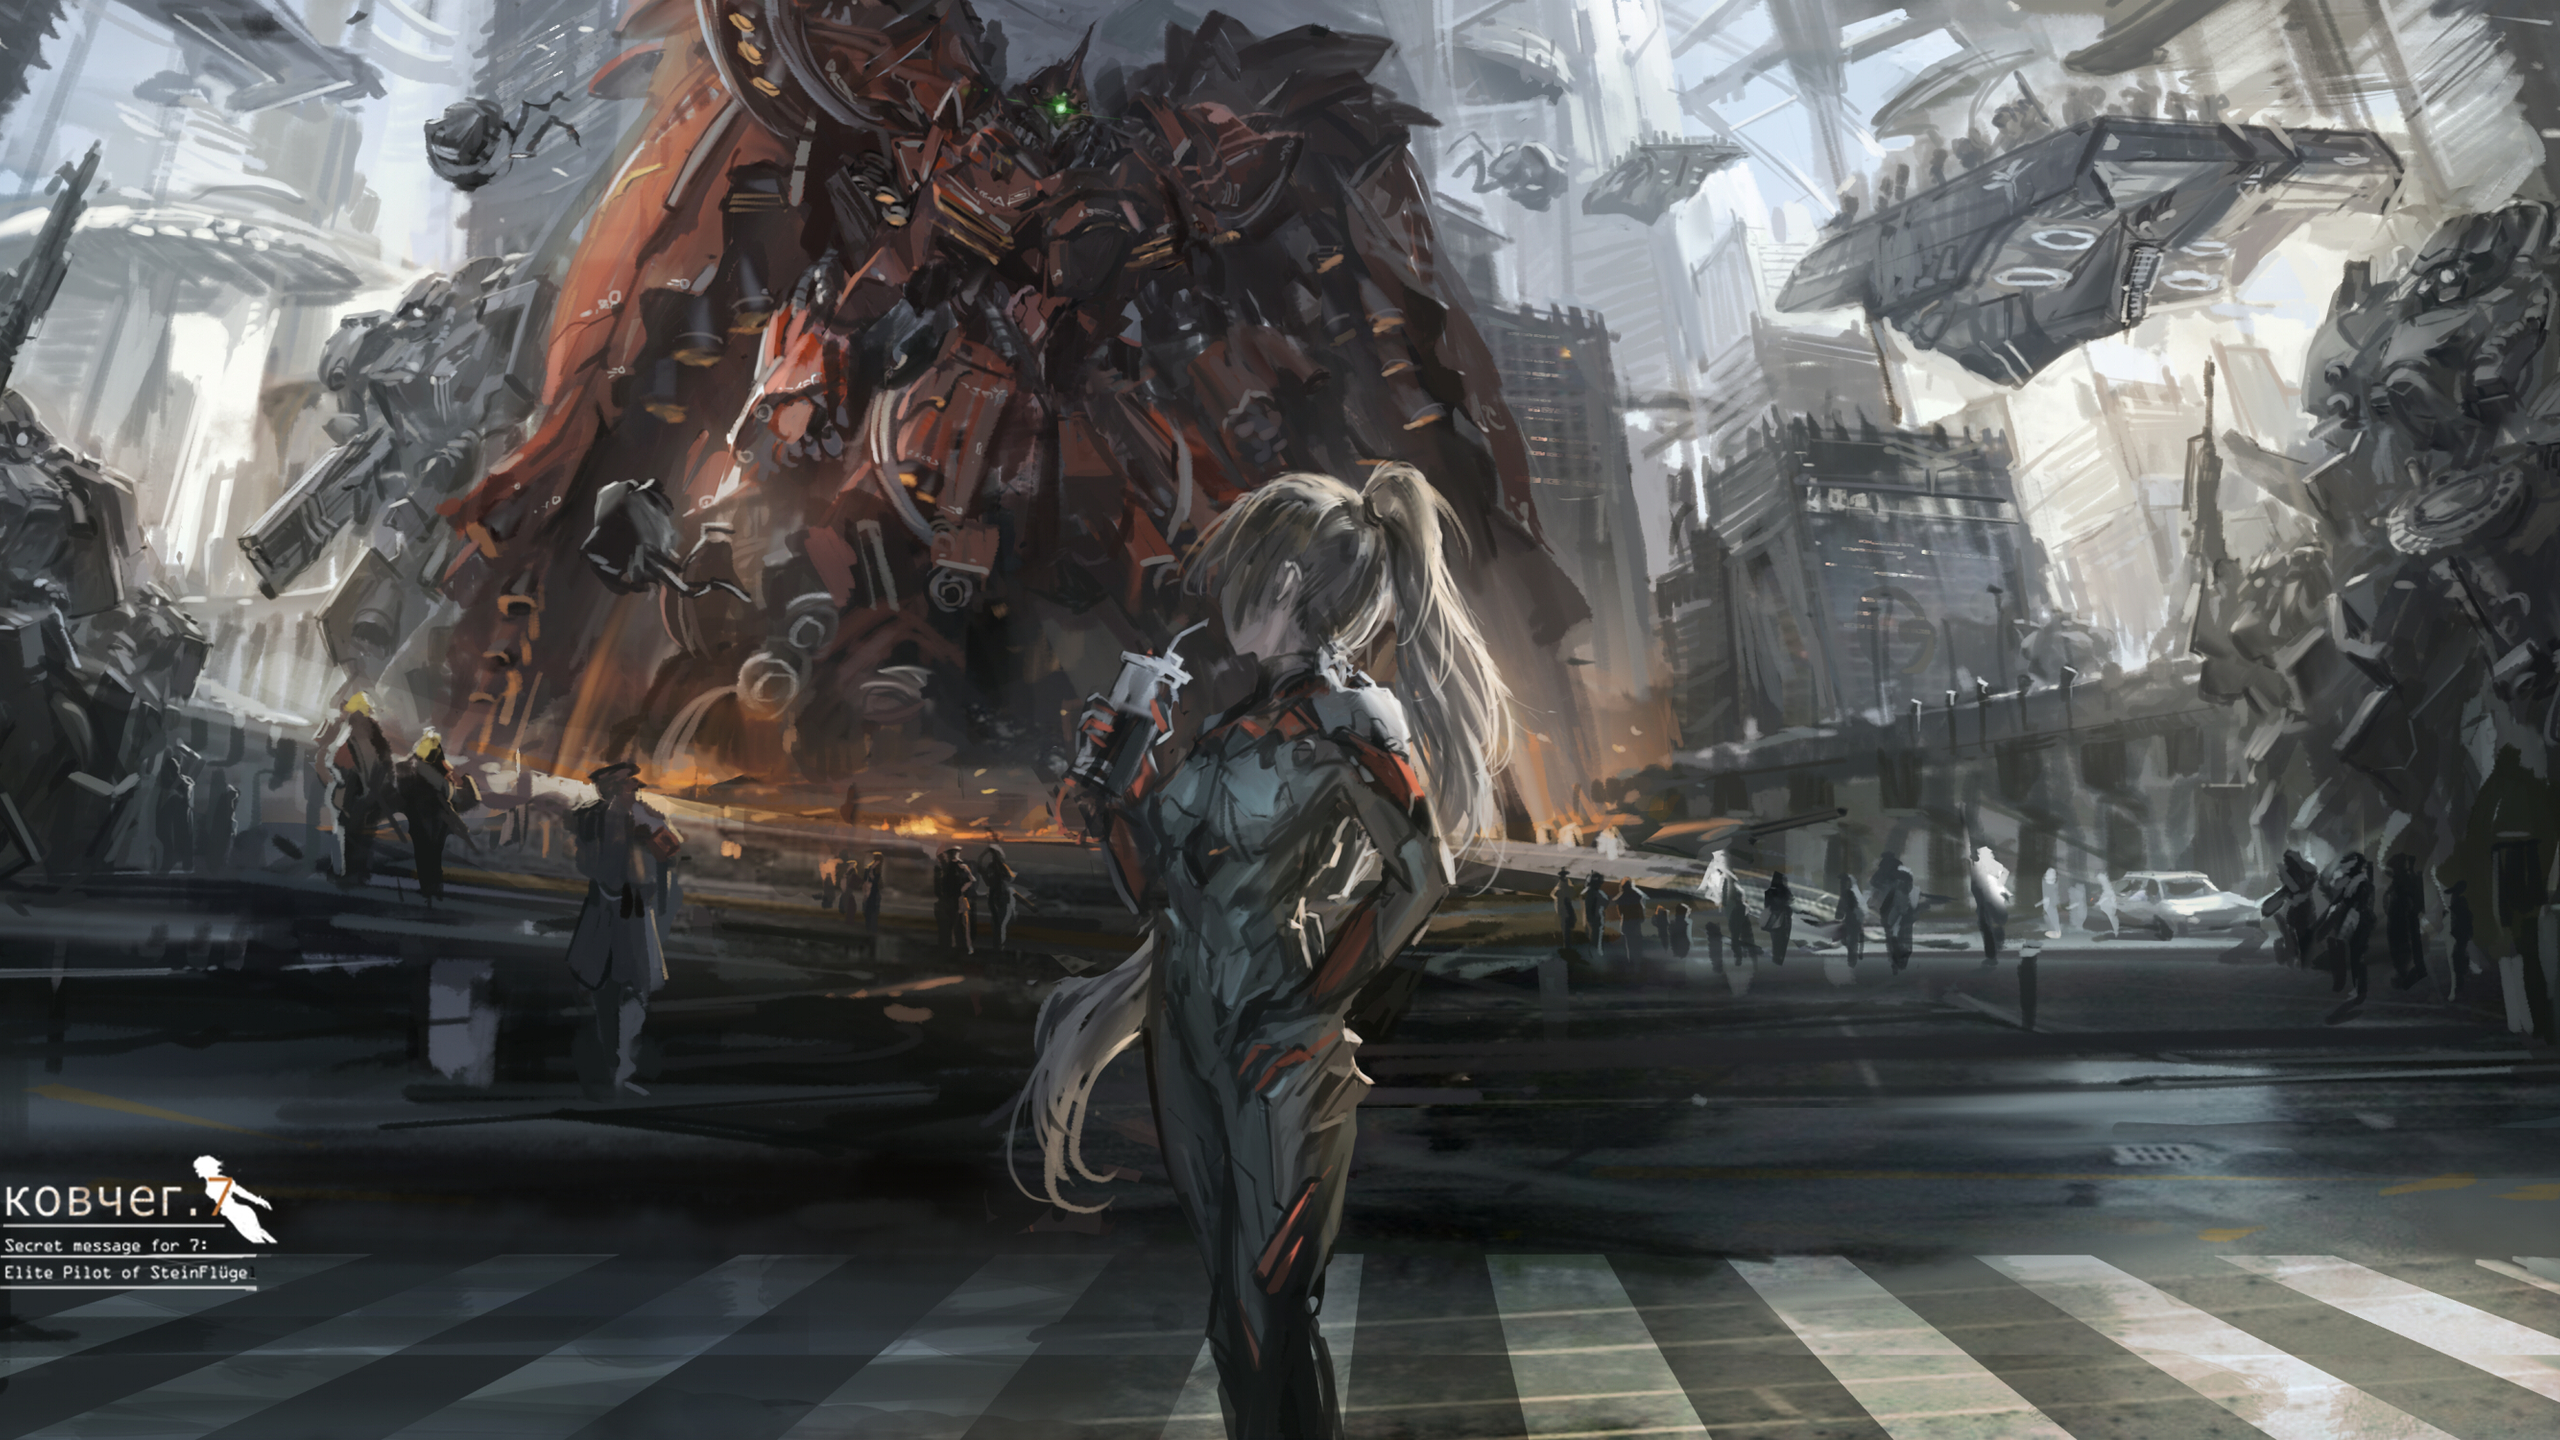 2560x1440 Anime Scifi 1440P Resolution HD 4k Wallpapers ...